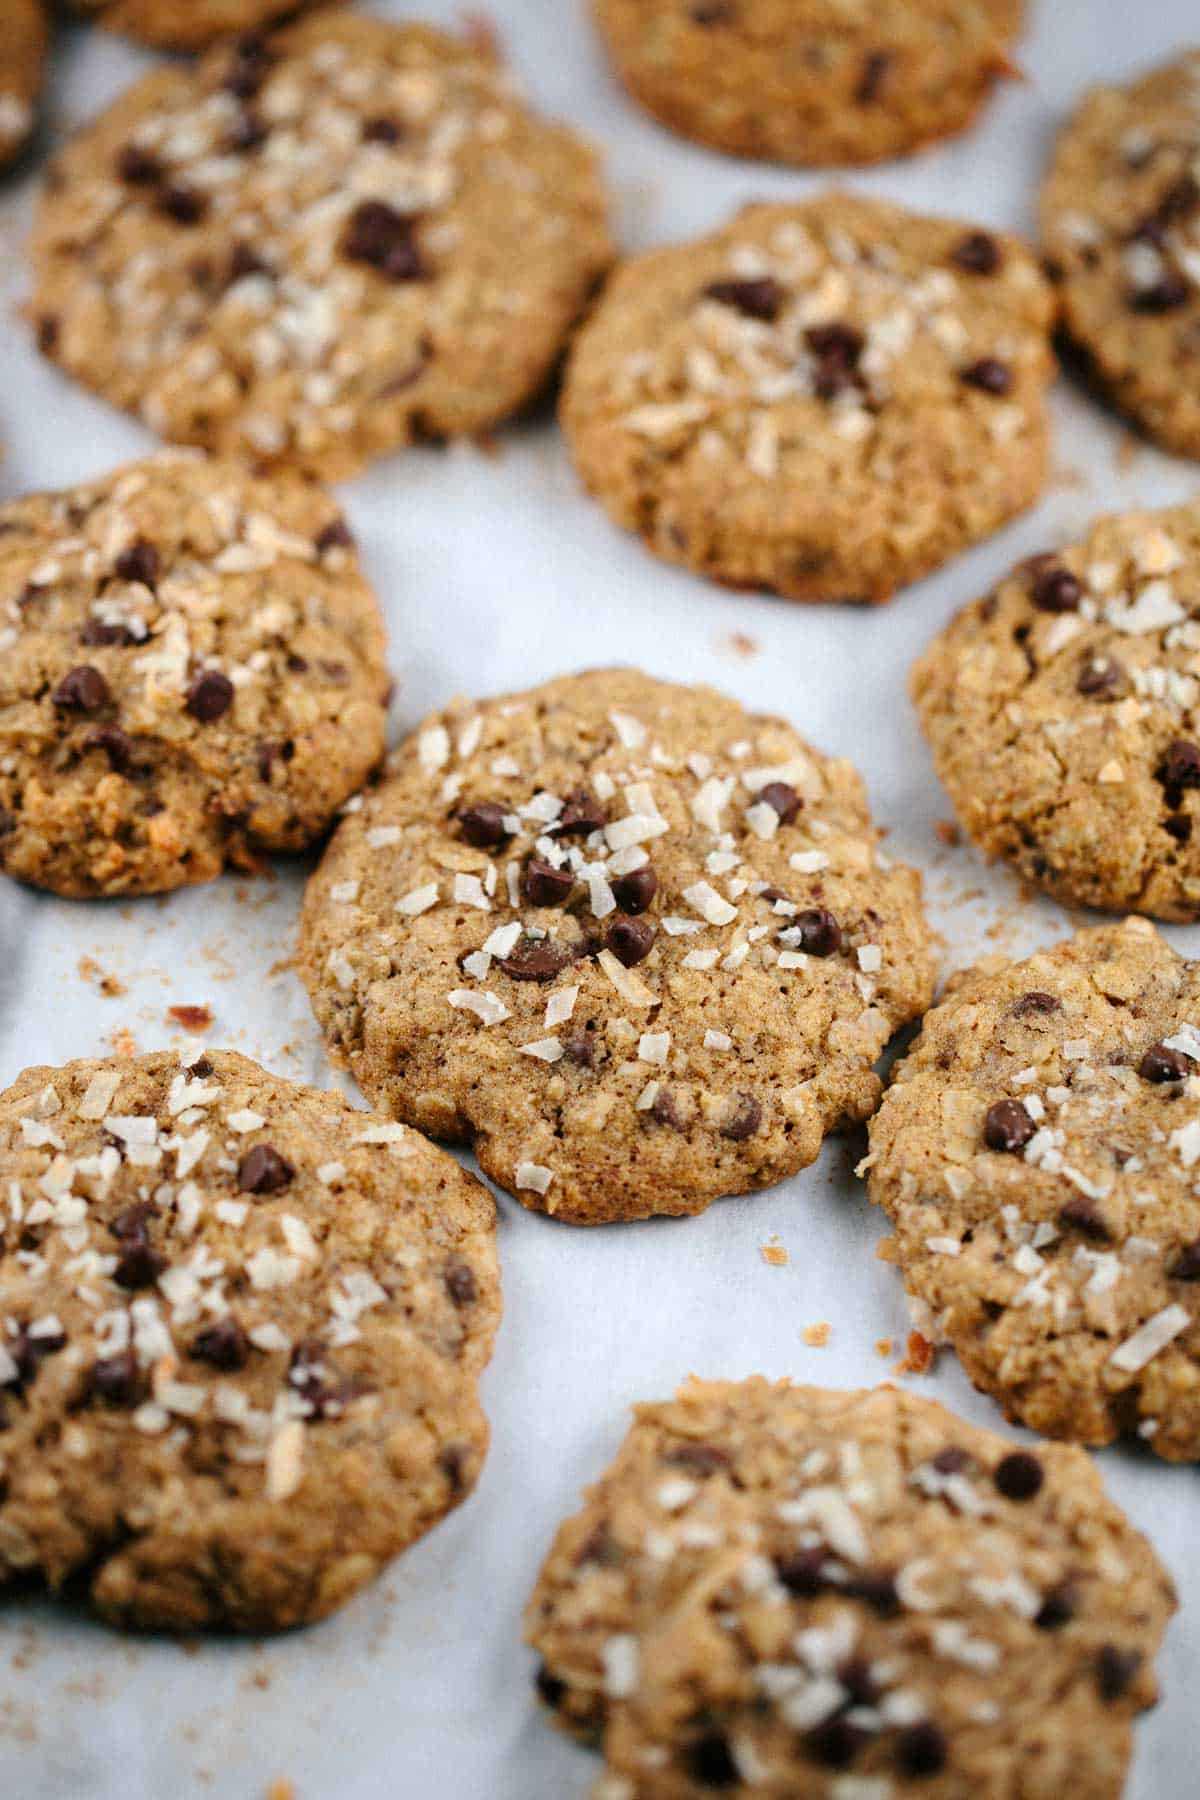 Oatmeal Chocolate Chip Coconut Lactation Cookies - A treat for breast feeding mommies! Brewer's yeast, flax seed and oatmeal are the special ingredients for this recipe. The cookies taste yummy too! | jessicagavin.com